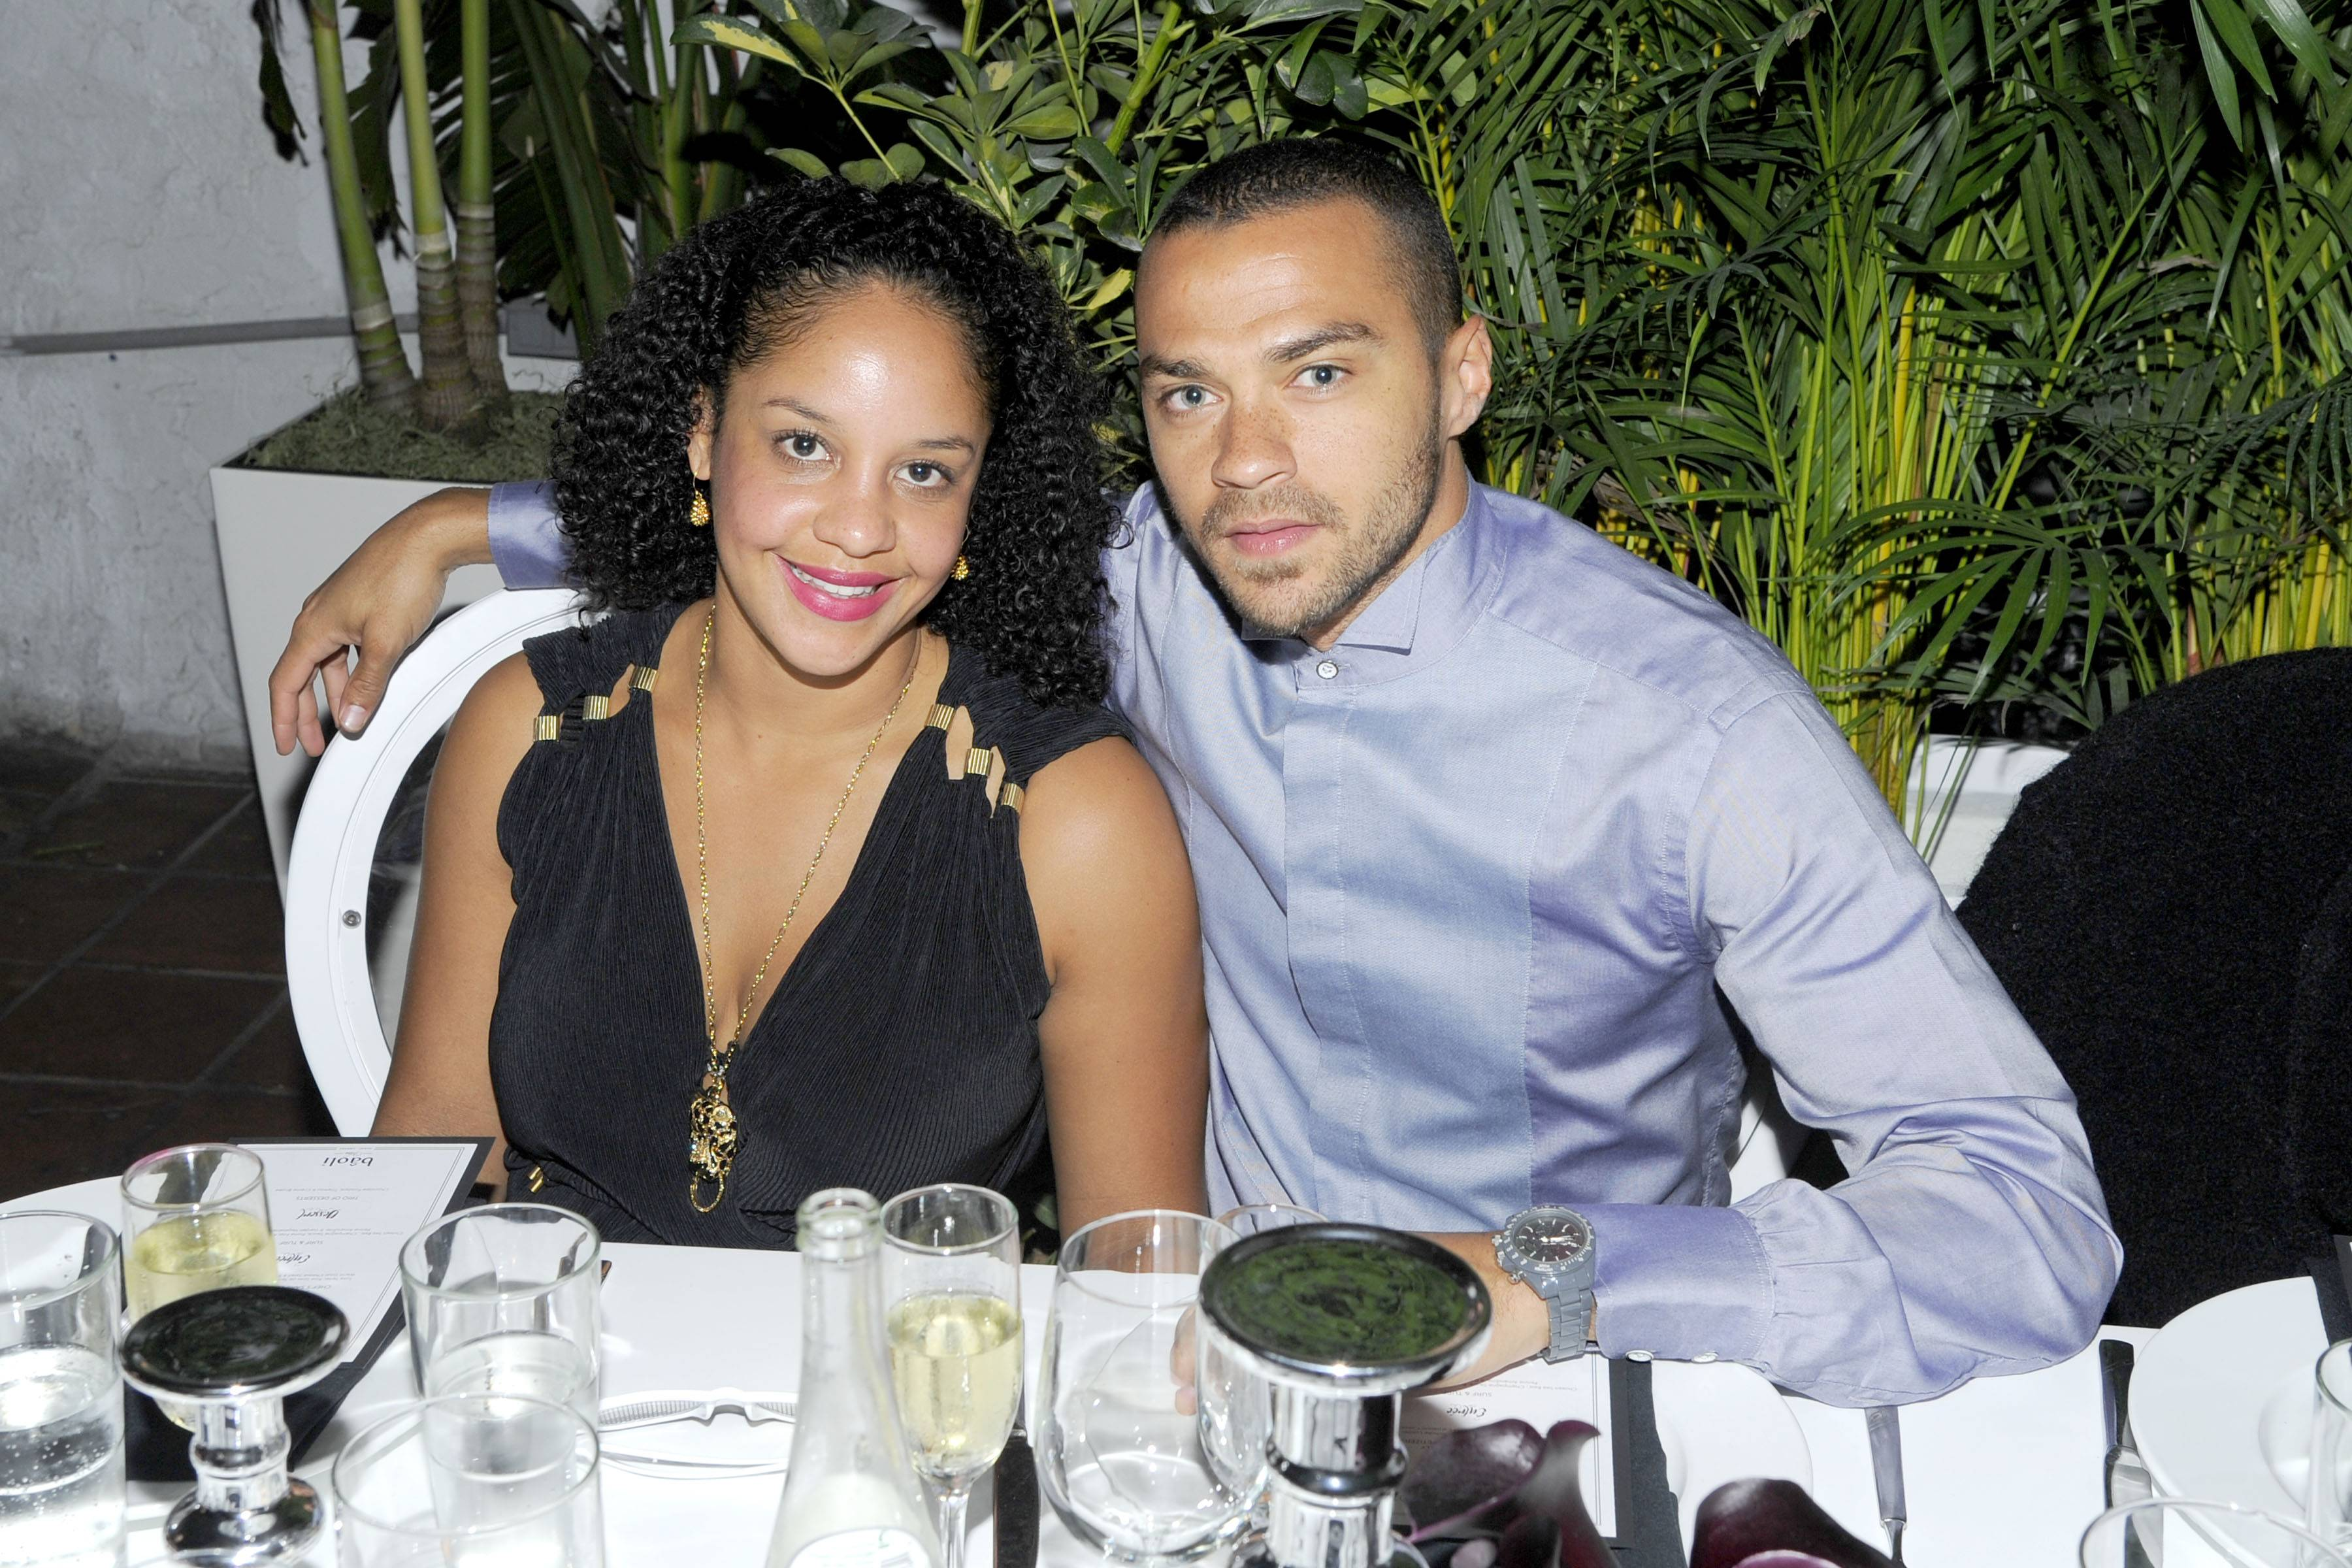 http://hauteliving.com/wp-content/uploads/2011/12/Jesse-Williams-and-fiancee-Aryn-Drake-Lee.jpg